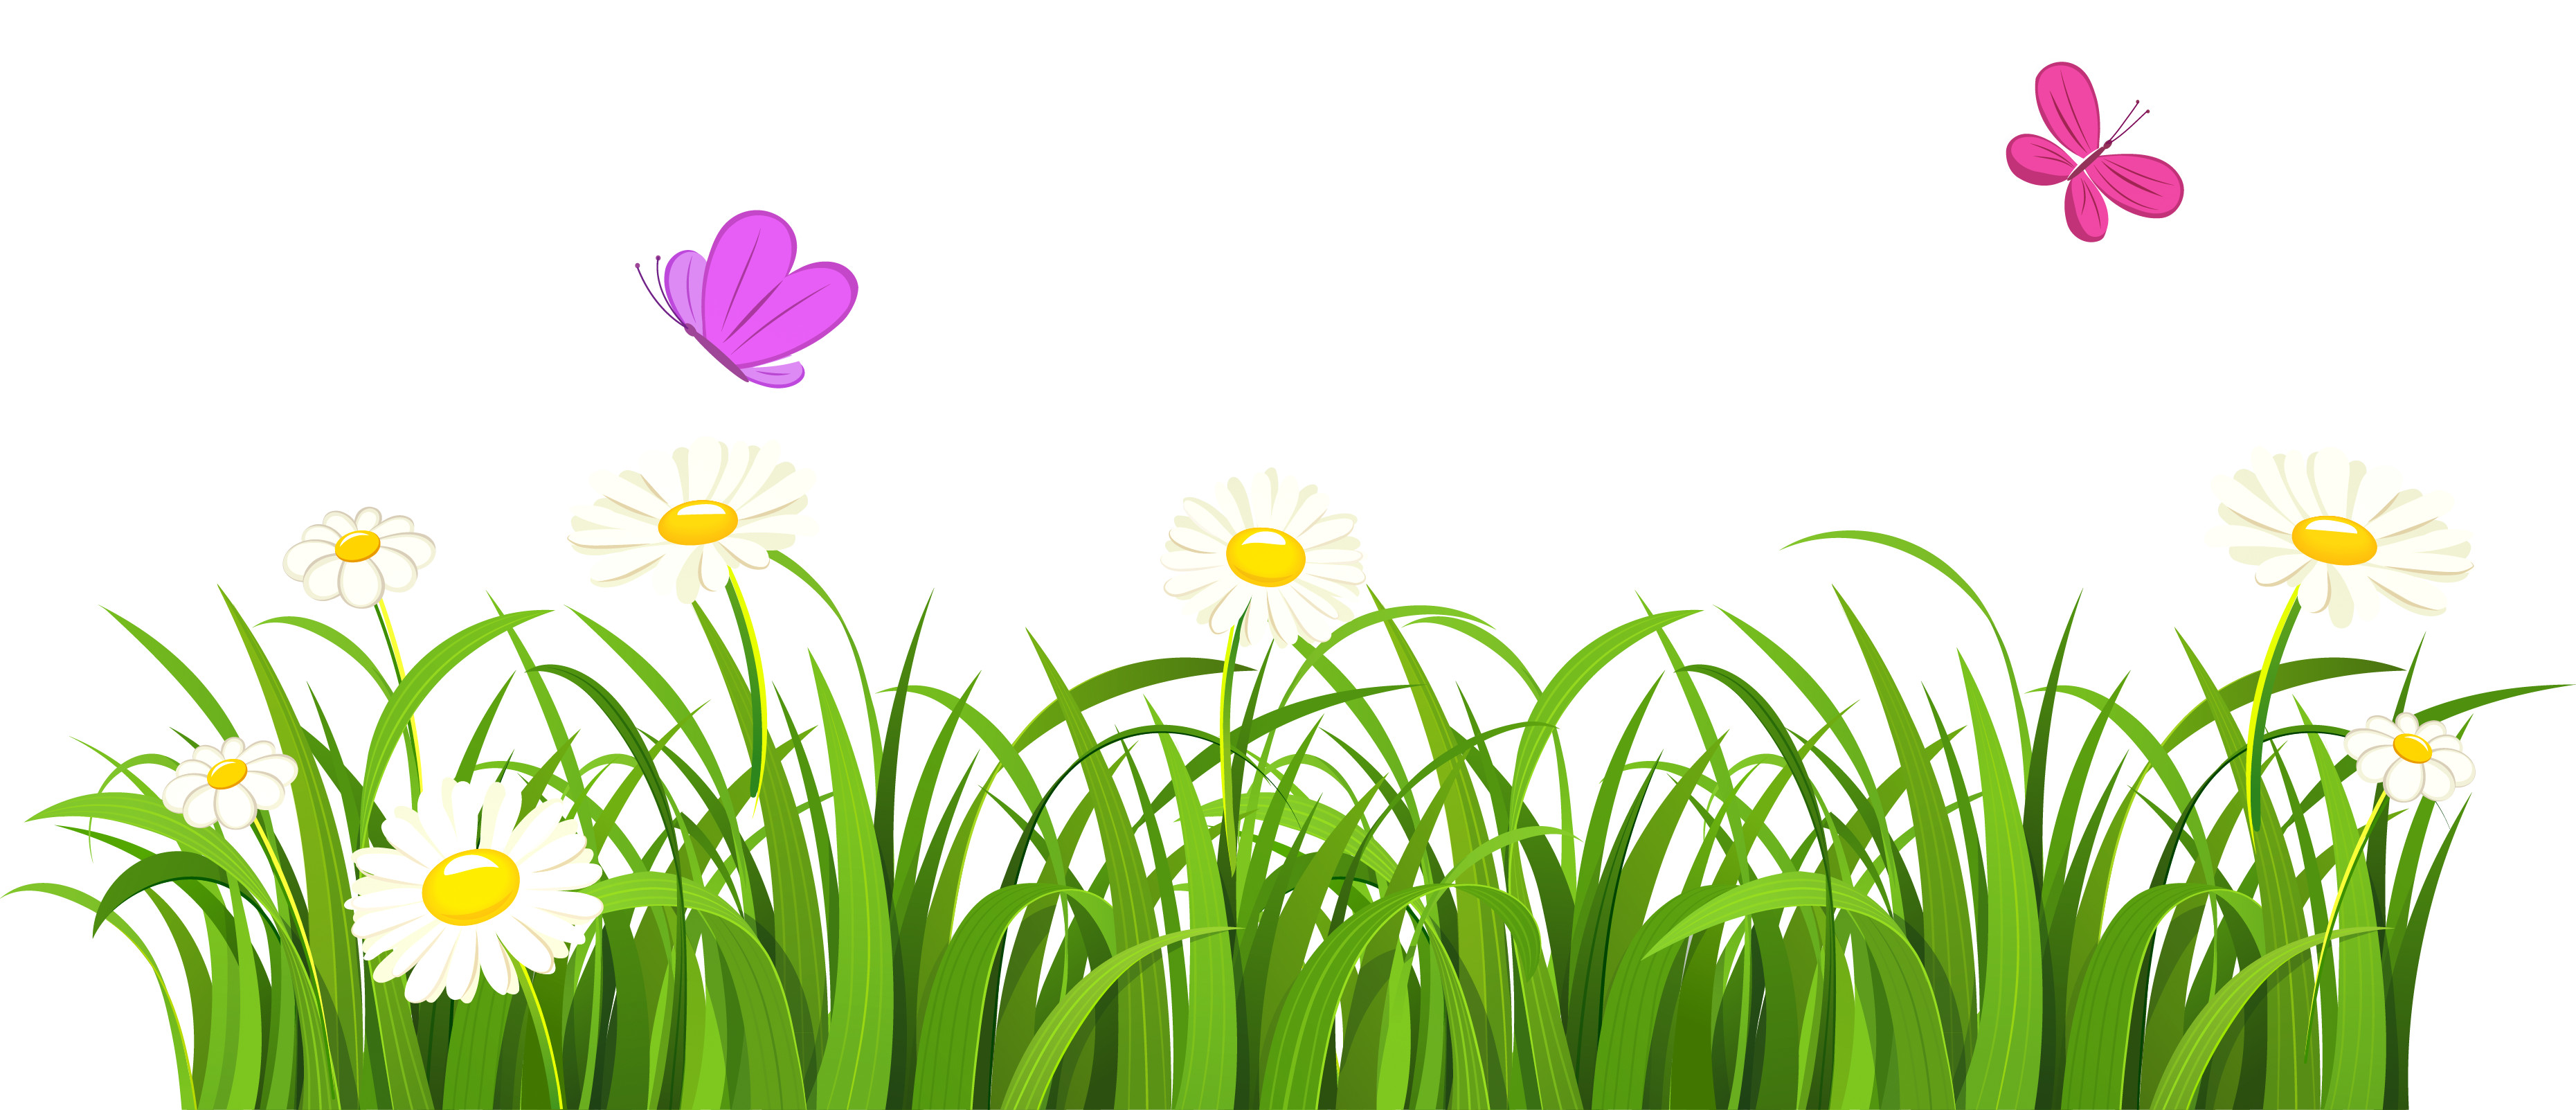 Cute backgrounds images x. Background clipart spring